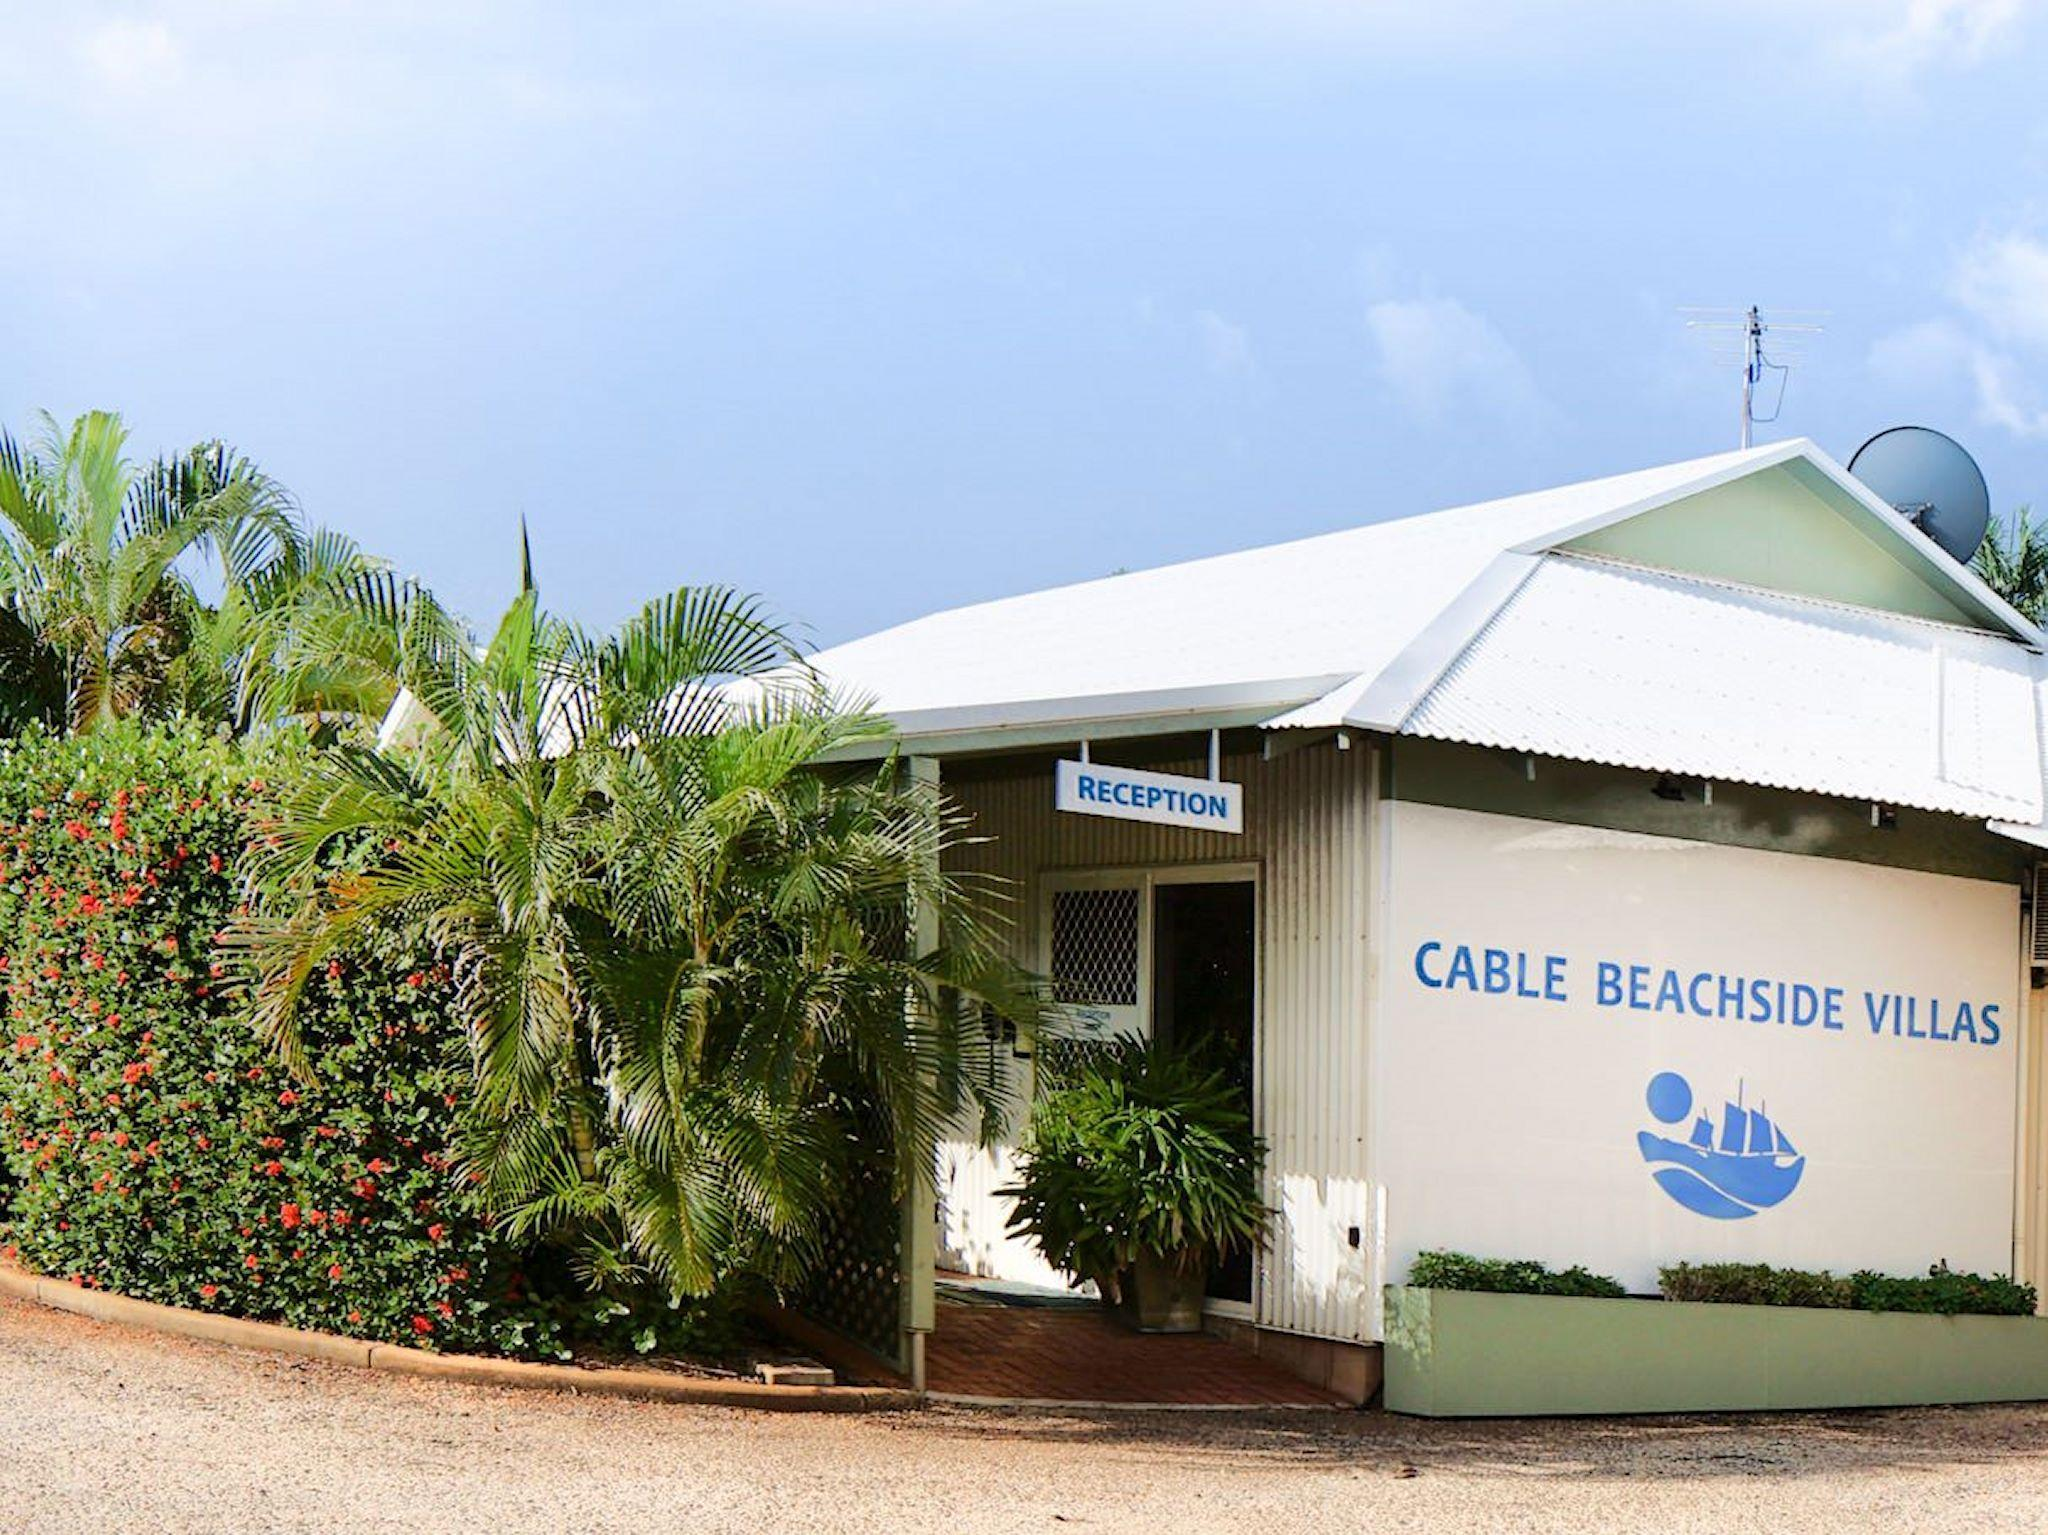 Cable Beachside Villas